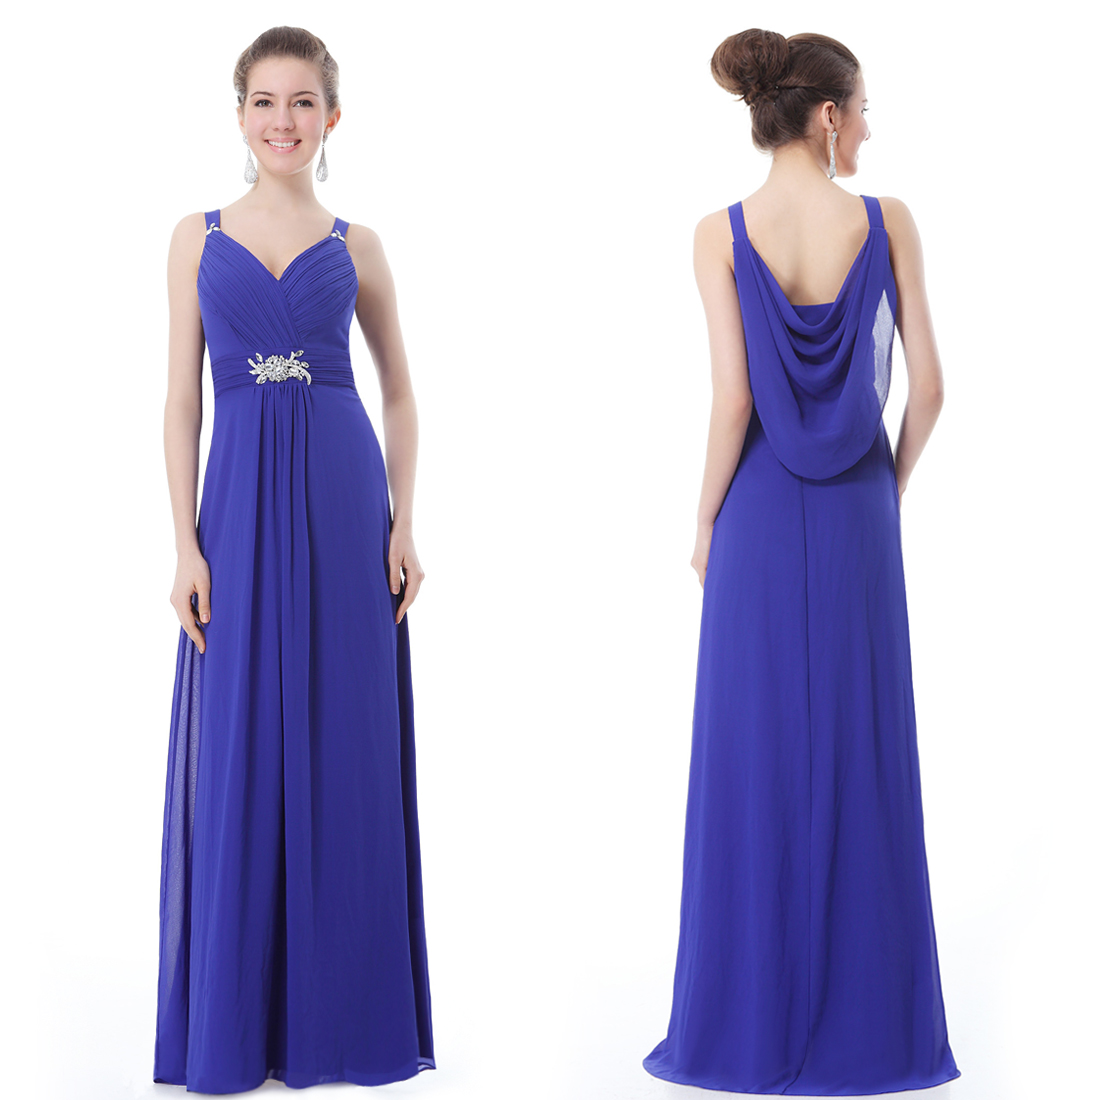 New Long Evening Formal Prom Party Gown Dress 09056 UK